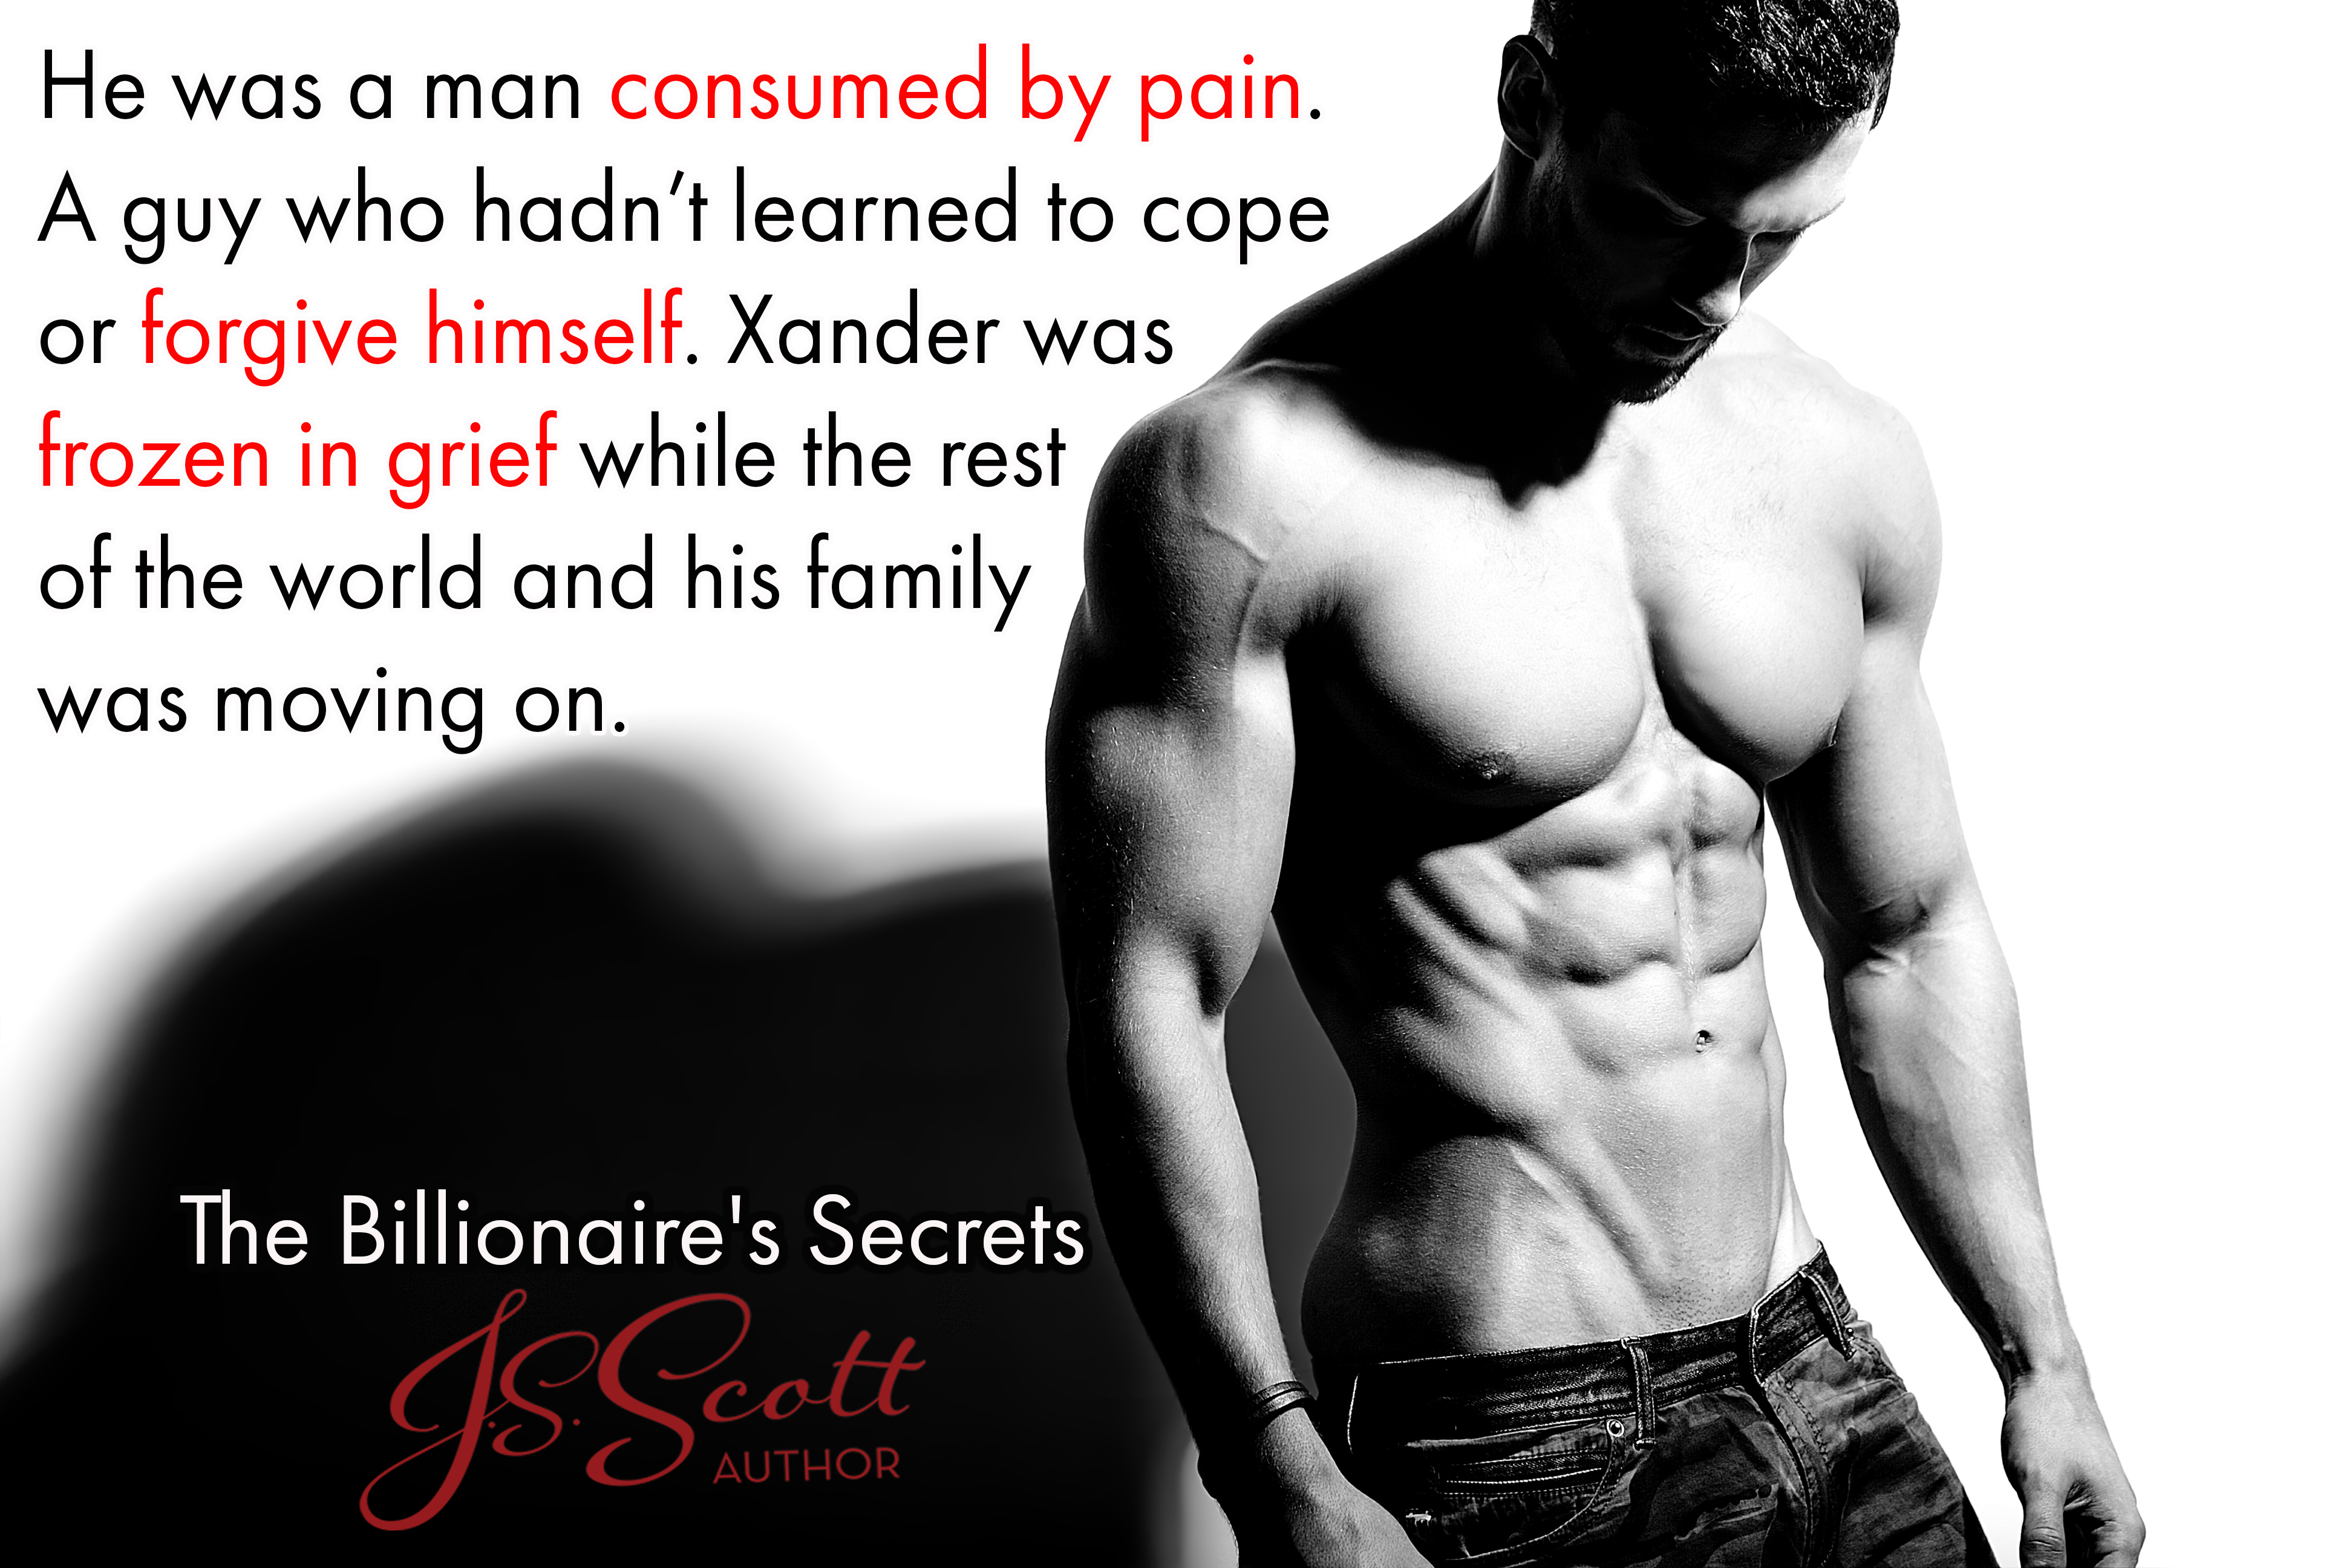 THE BILLIONAIRE'S SECRET by J.S. Scott